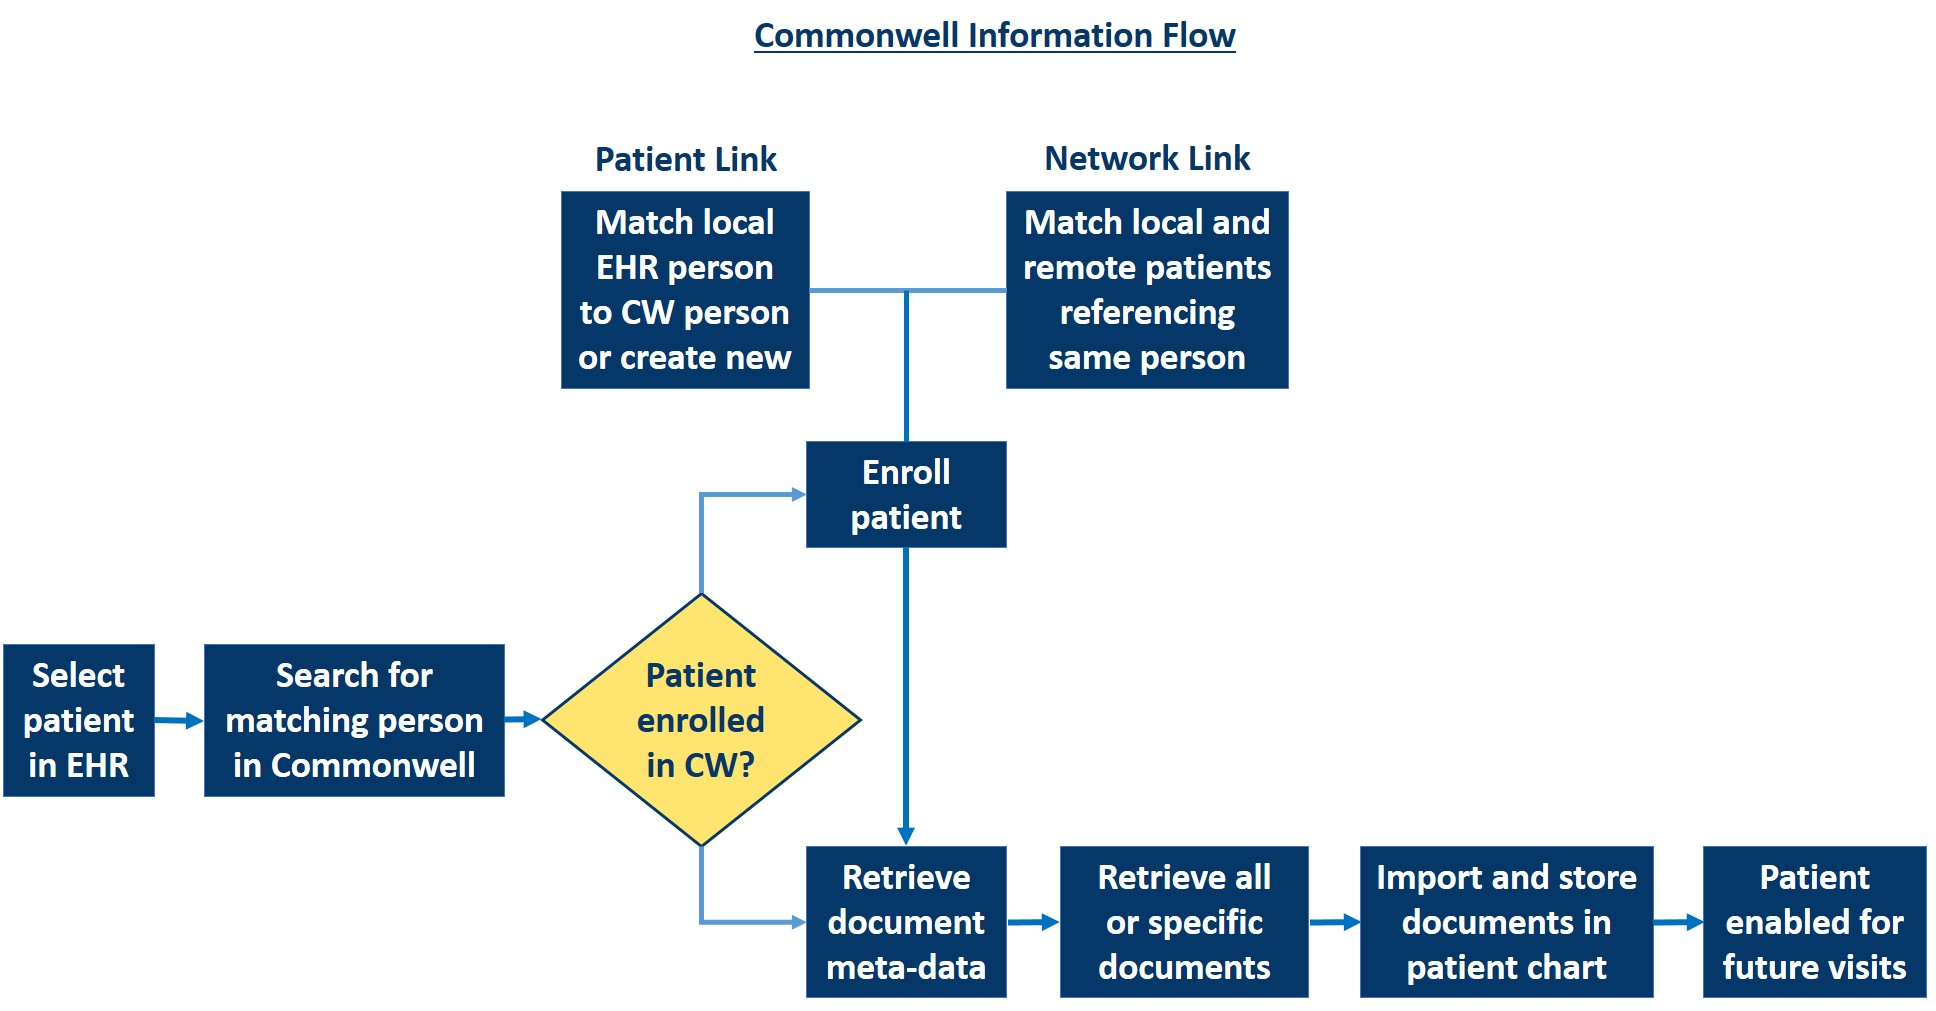 Commonwell Alliance information flow diagram